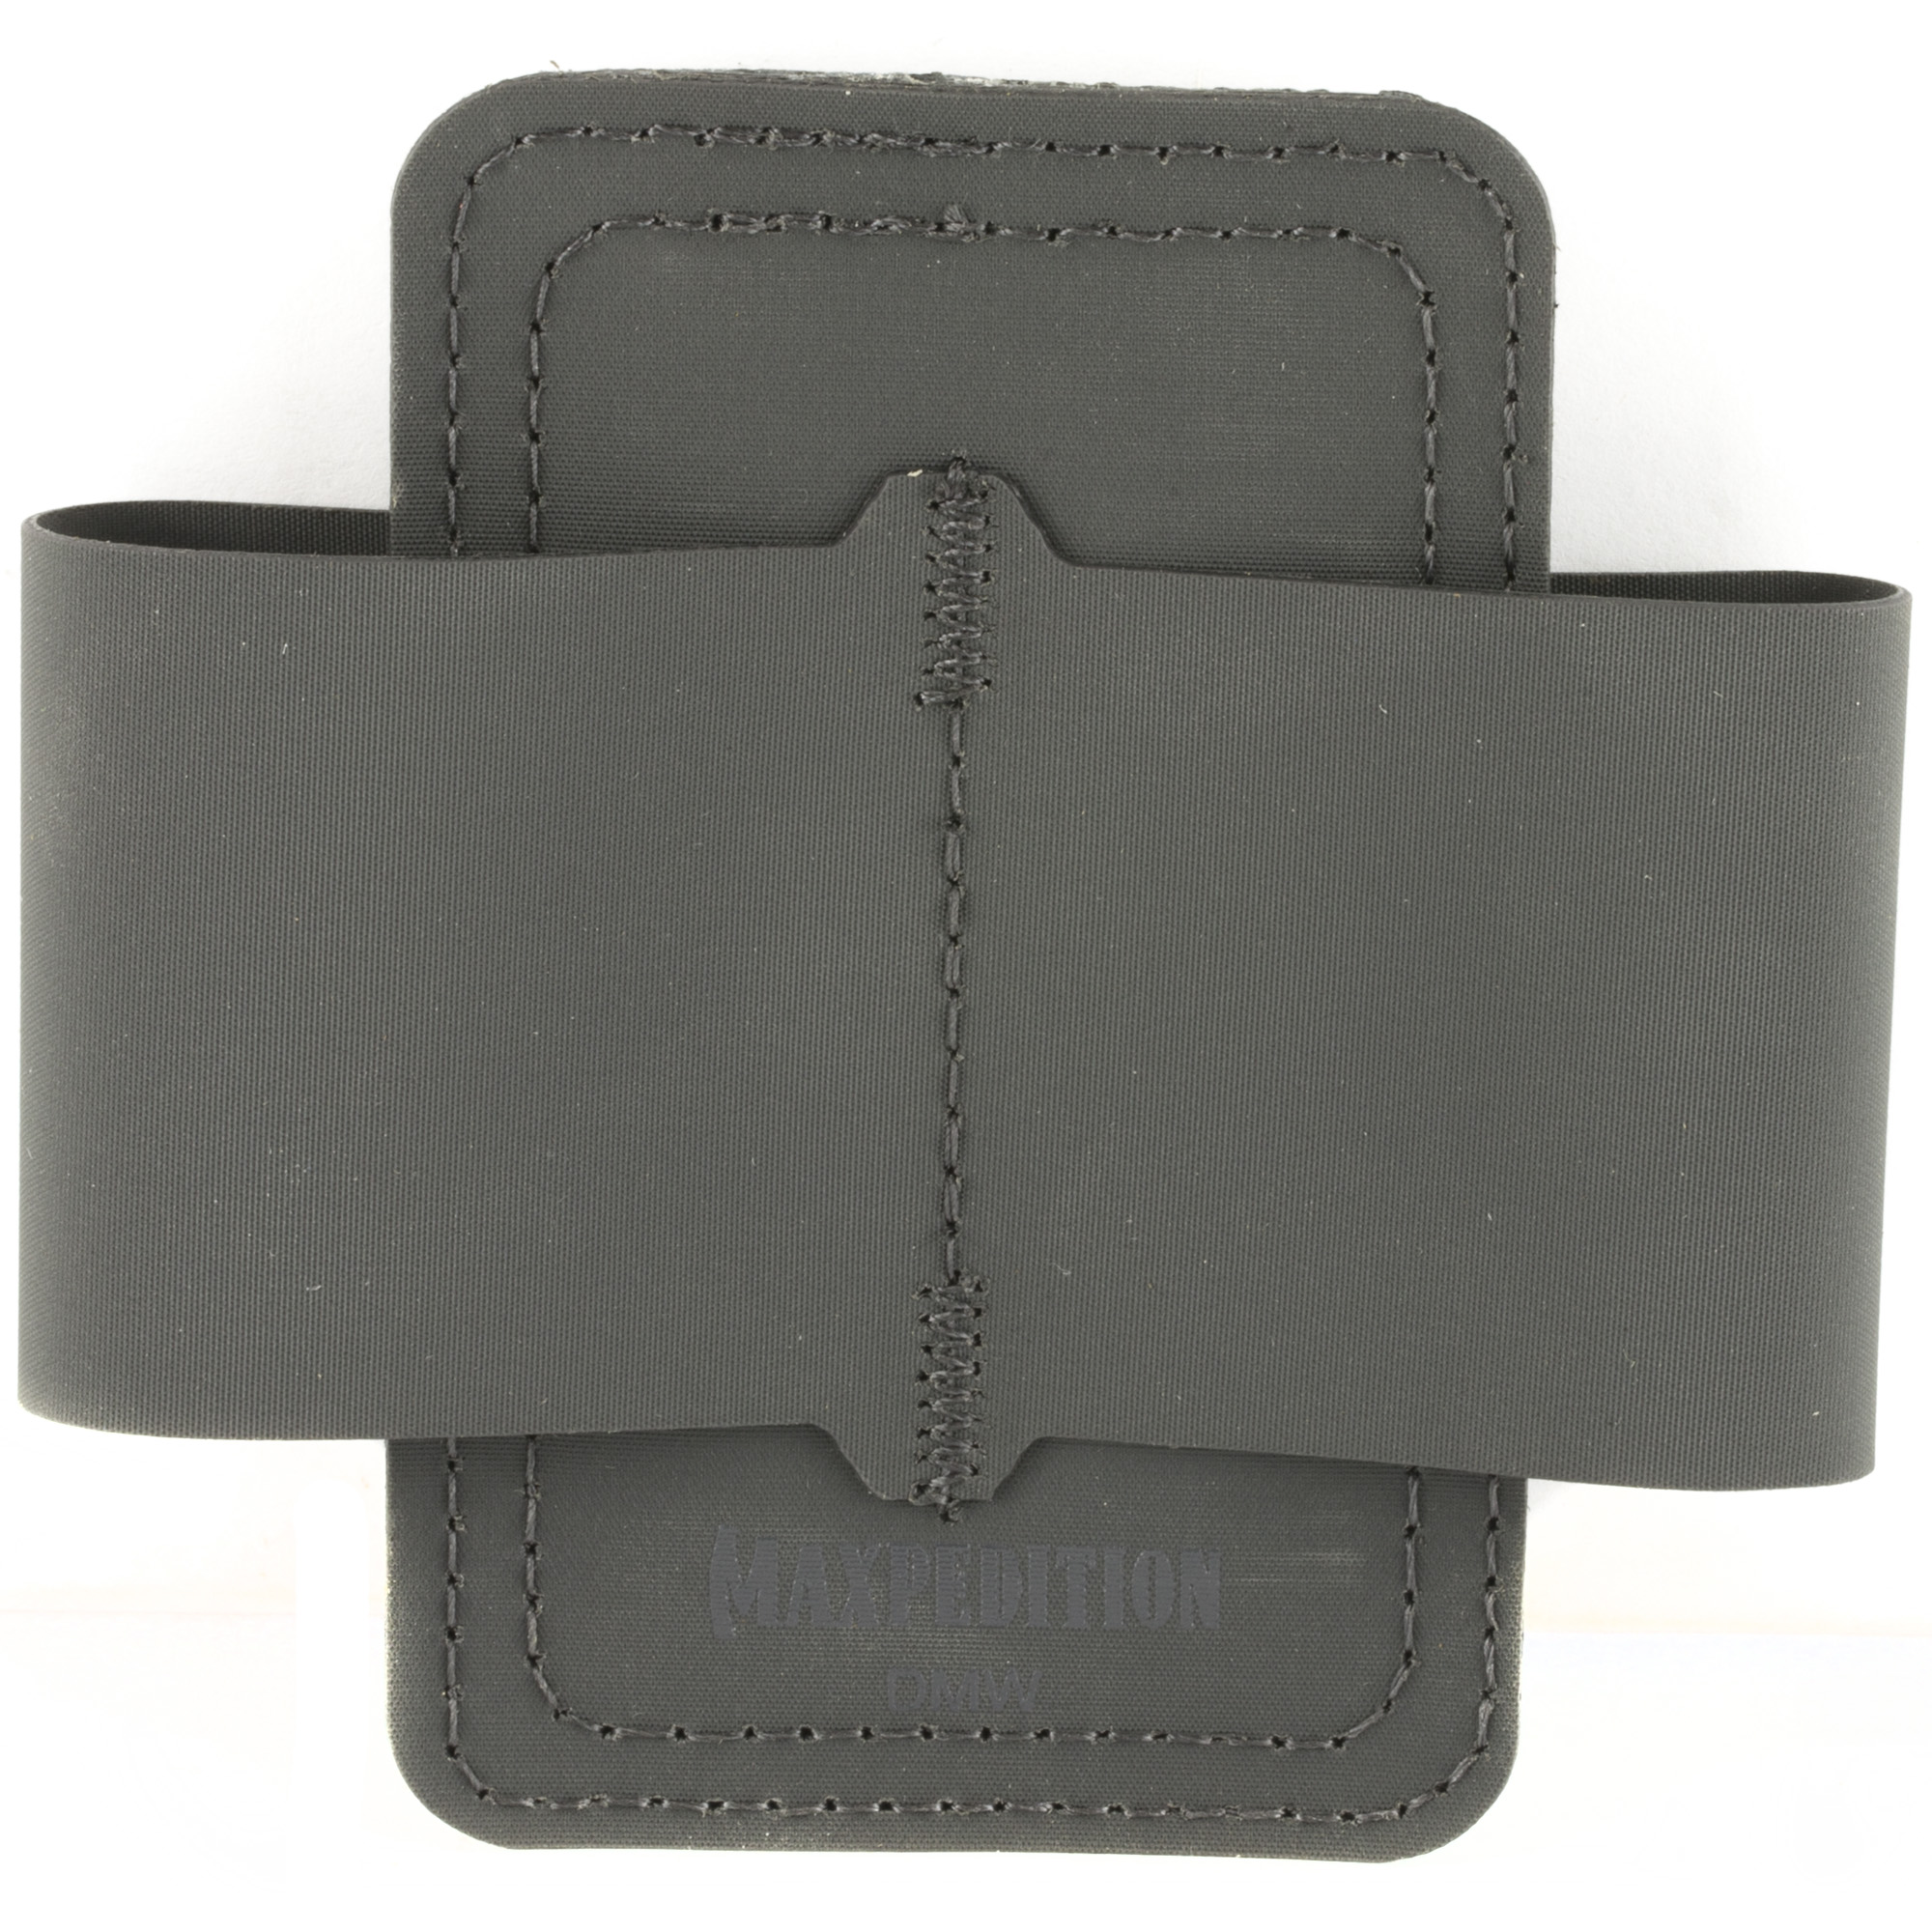 """The DMW Dual Mag Wrap has a hook & loop back and can attach to any loop field on Maxpedition bags. It will fit two (2) magazines from a wide range of handgun sizes. It can also be used to hold flashlights"""" tools"""" etc. To use the Dual Mag Wrap"""" open the flaps and lay flat. The Maxpedition logo should be facing up in the correct reading position. Place the magazine under the flap as close to the middle seam as possible. Wrap the flap around the magazine"""" and secure using the hook & loop on the back. Place the magazine wrap into a CCW compartment"""" or any other compartment with hook & loop"""" and press firmly to secure."""